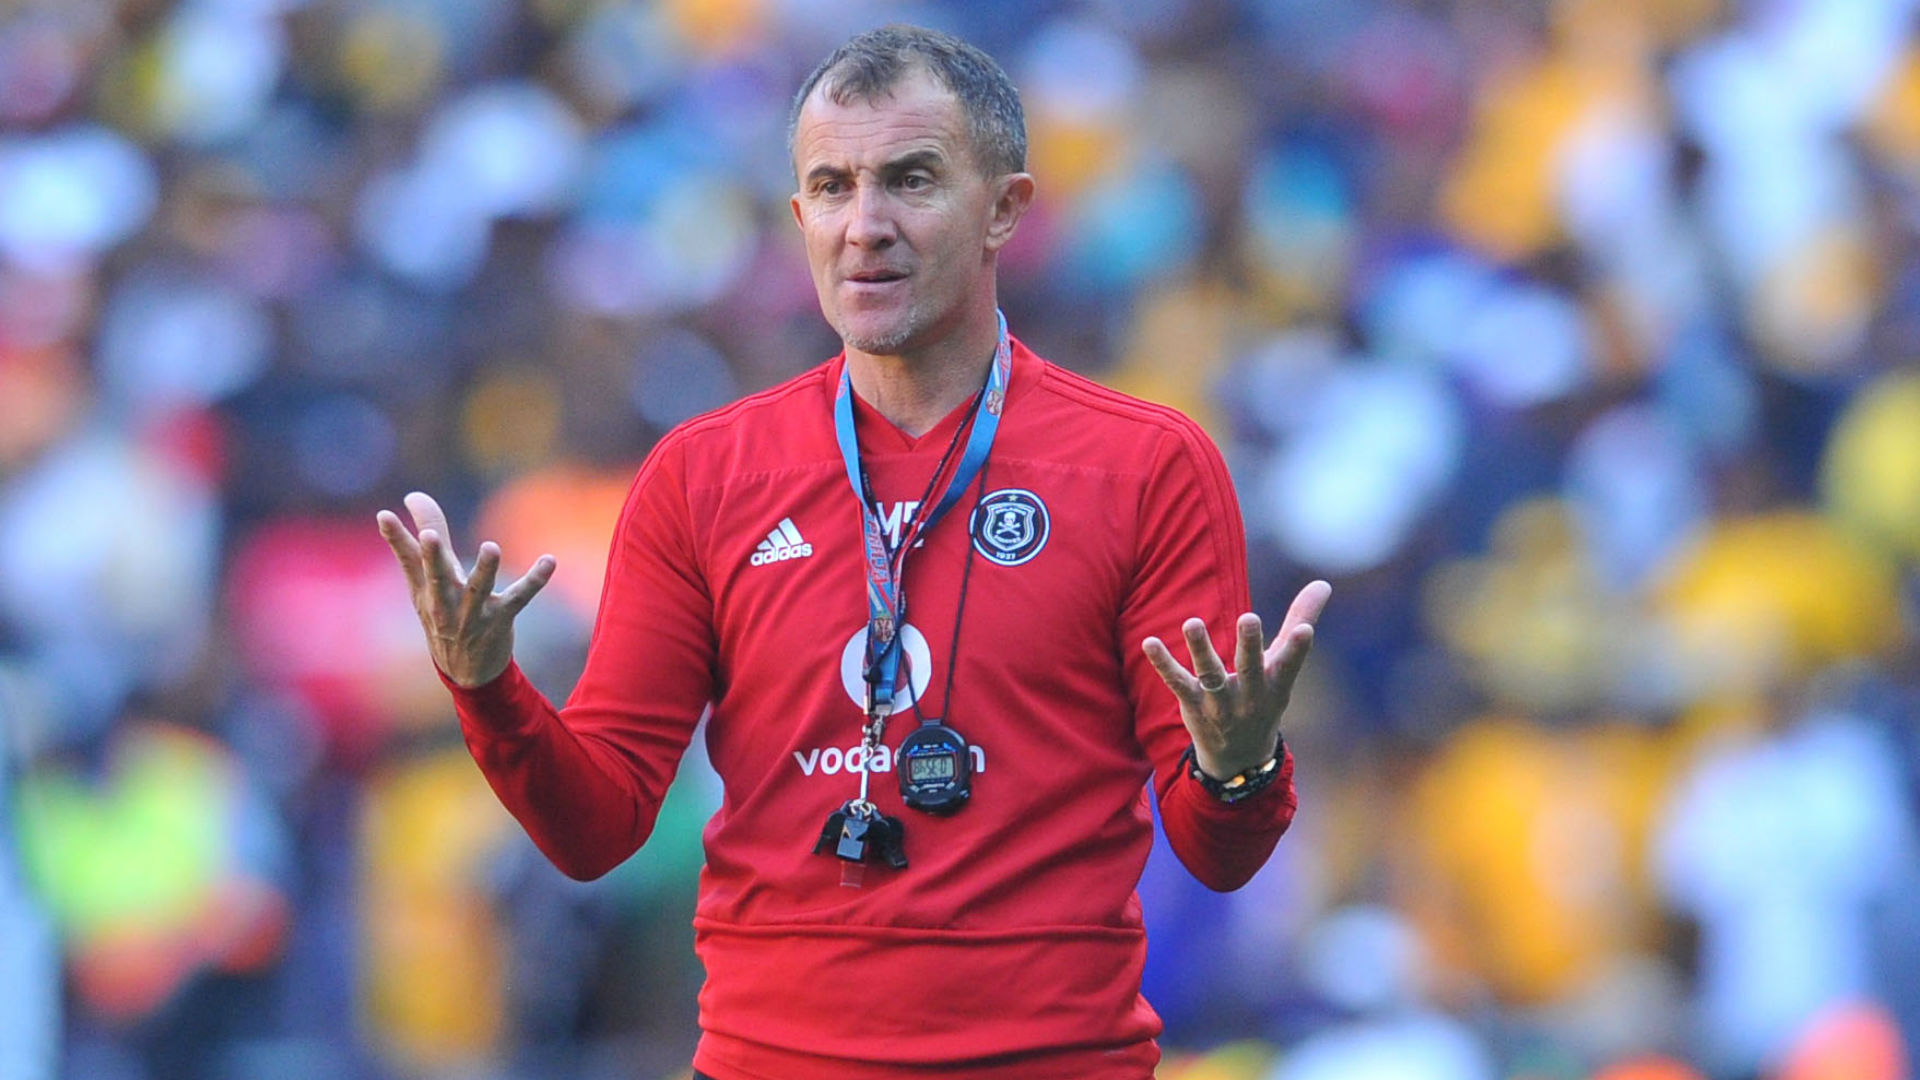 Sredojevic: Former Orlando Pirates mentor reportedly appointed new Zambia coach